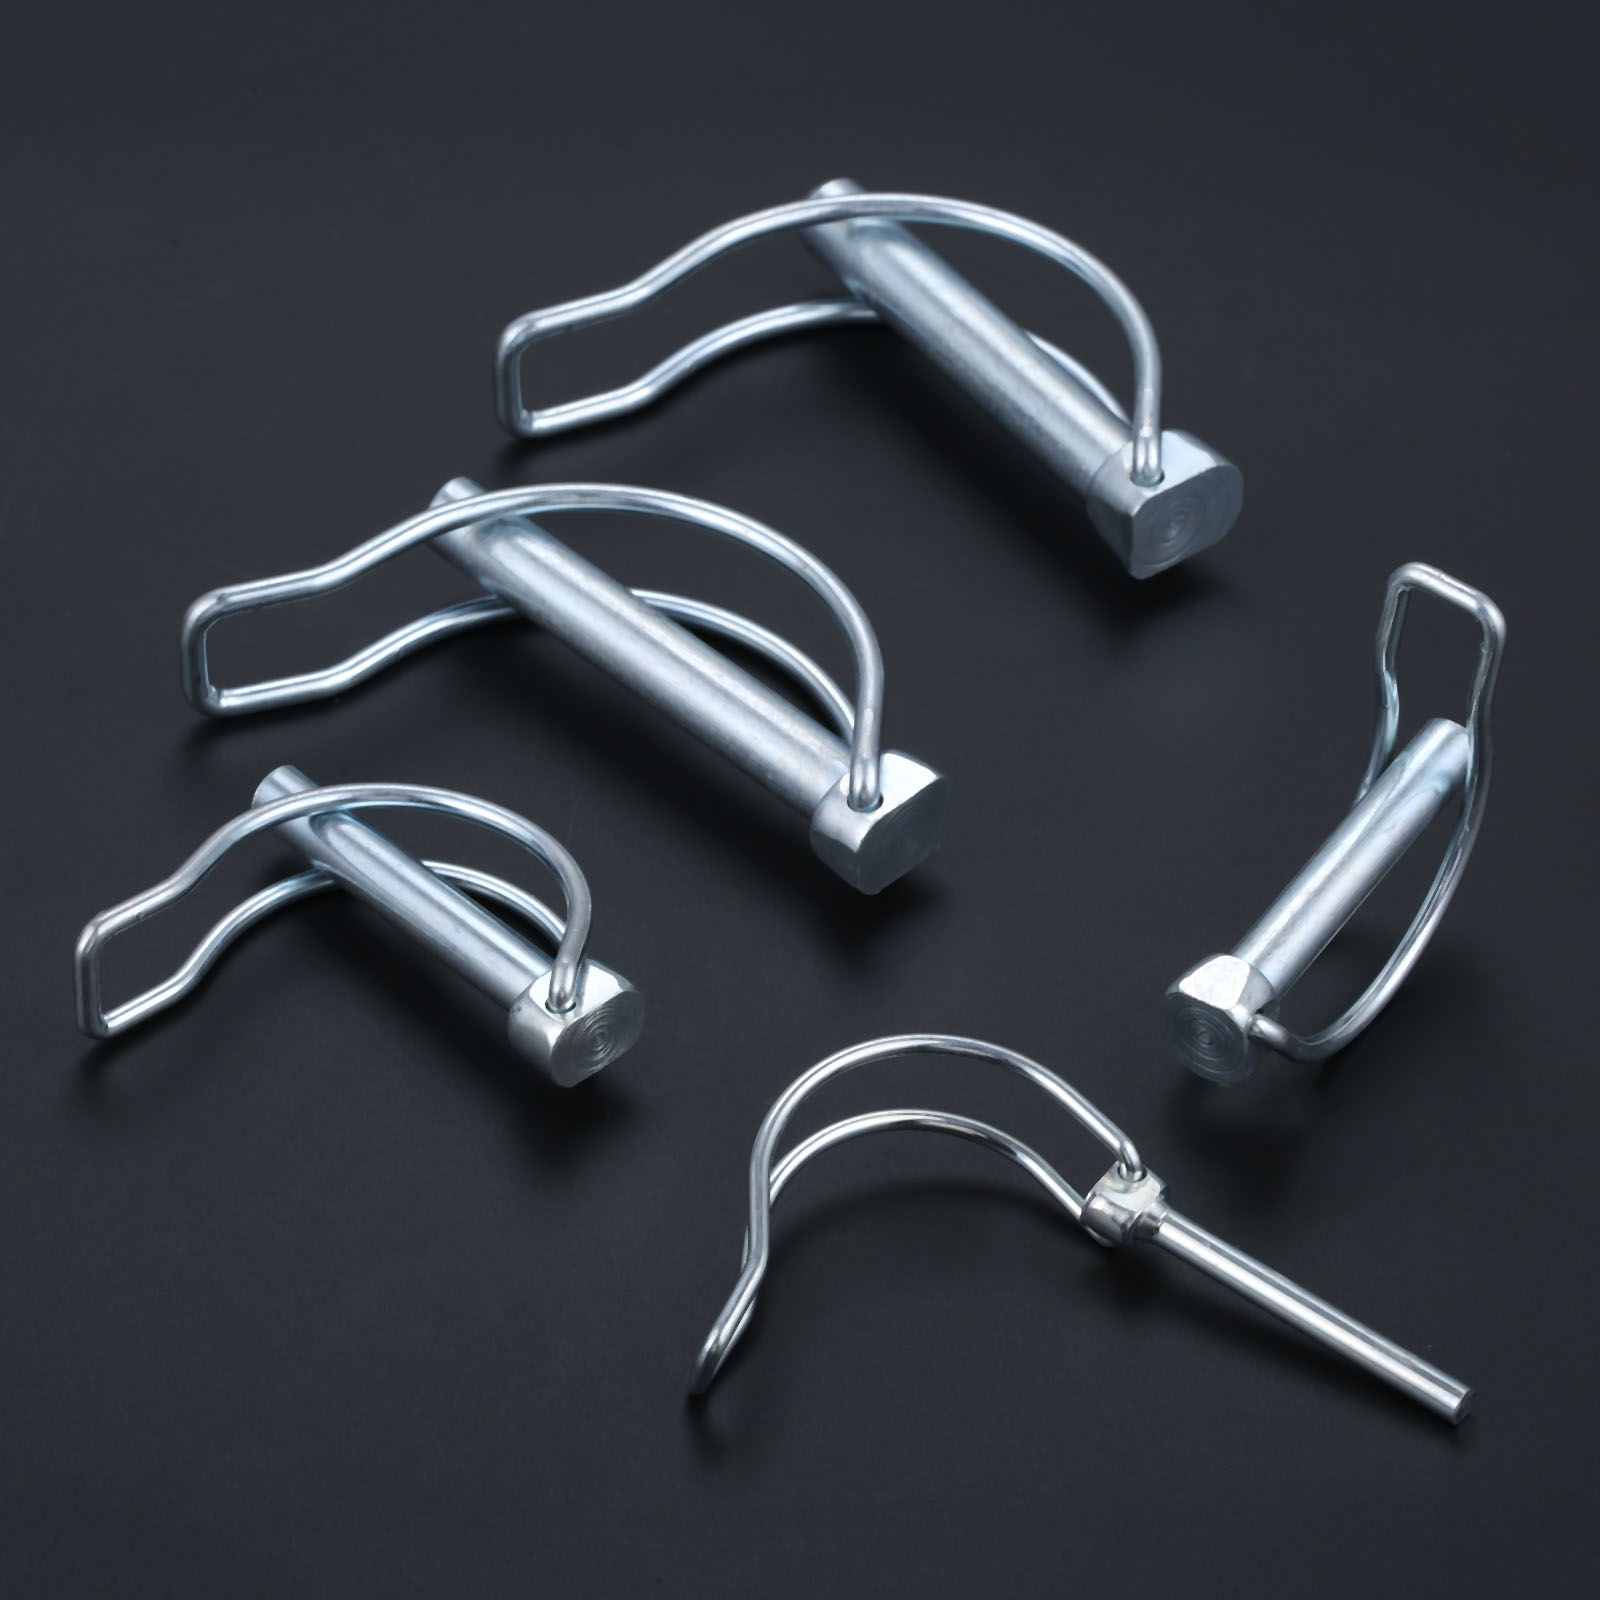 5/4/2pcs Quick Lock Release Pins Trailer Towing Coupler Safety Pin Bicycle Stroller Cargo Boat Hitch Hook D-Clip M4.5/M8/M10/M11